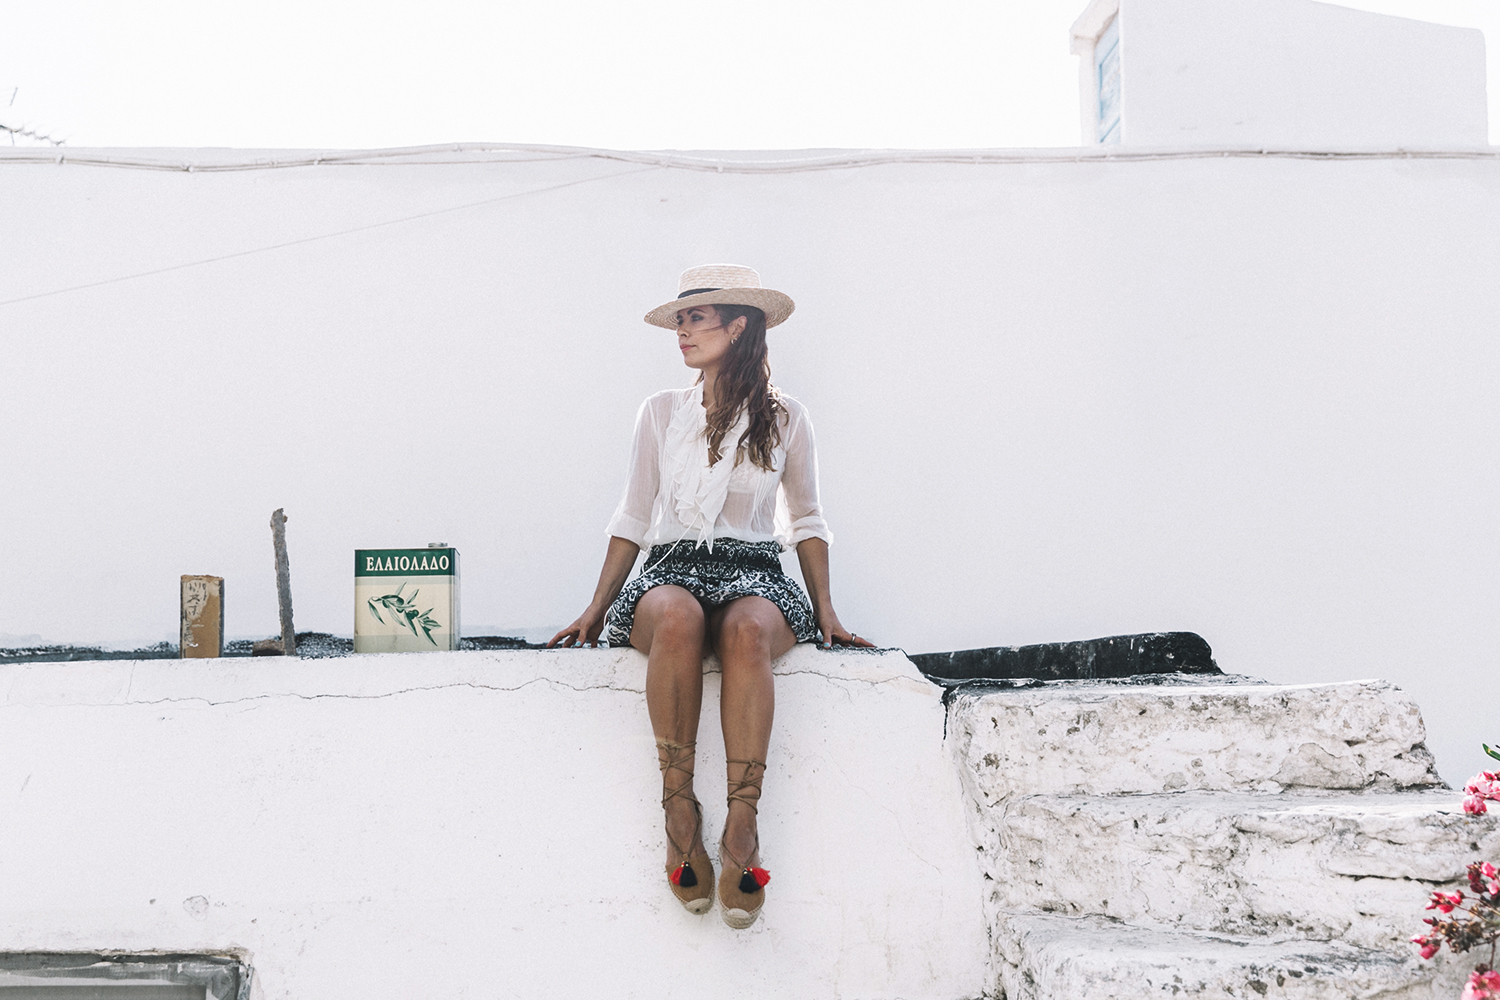 Lace_up_Blouse-Ralph_Lauren-Soludos_Espadrilles-Soludos_Escapes-Skirt-Straw_Hat-Canotier-Lack_Of_Color-Street_Style-Mykonos-Greece-Collage_Vintage-56